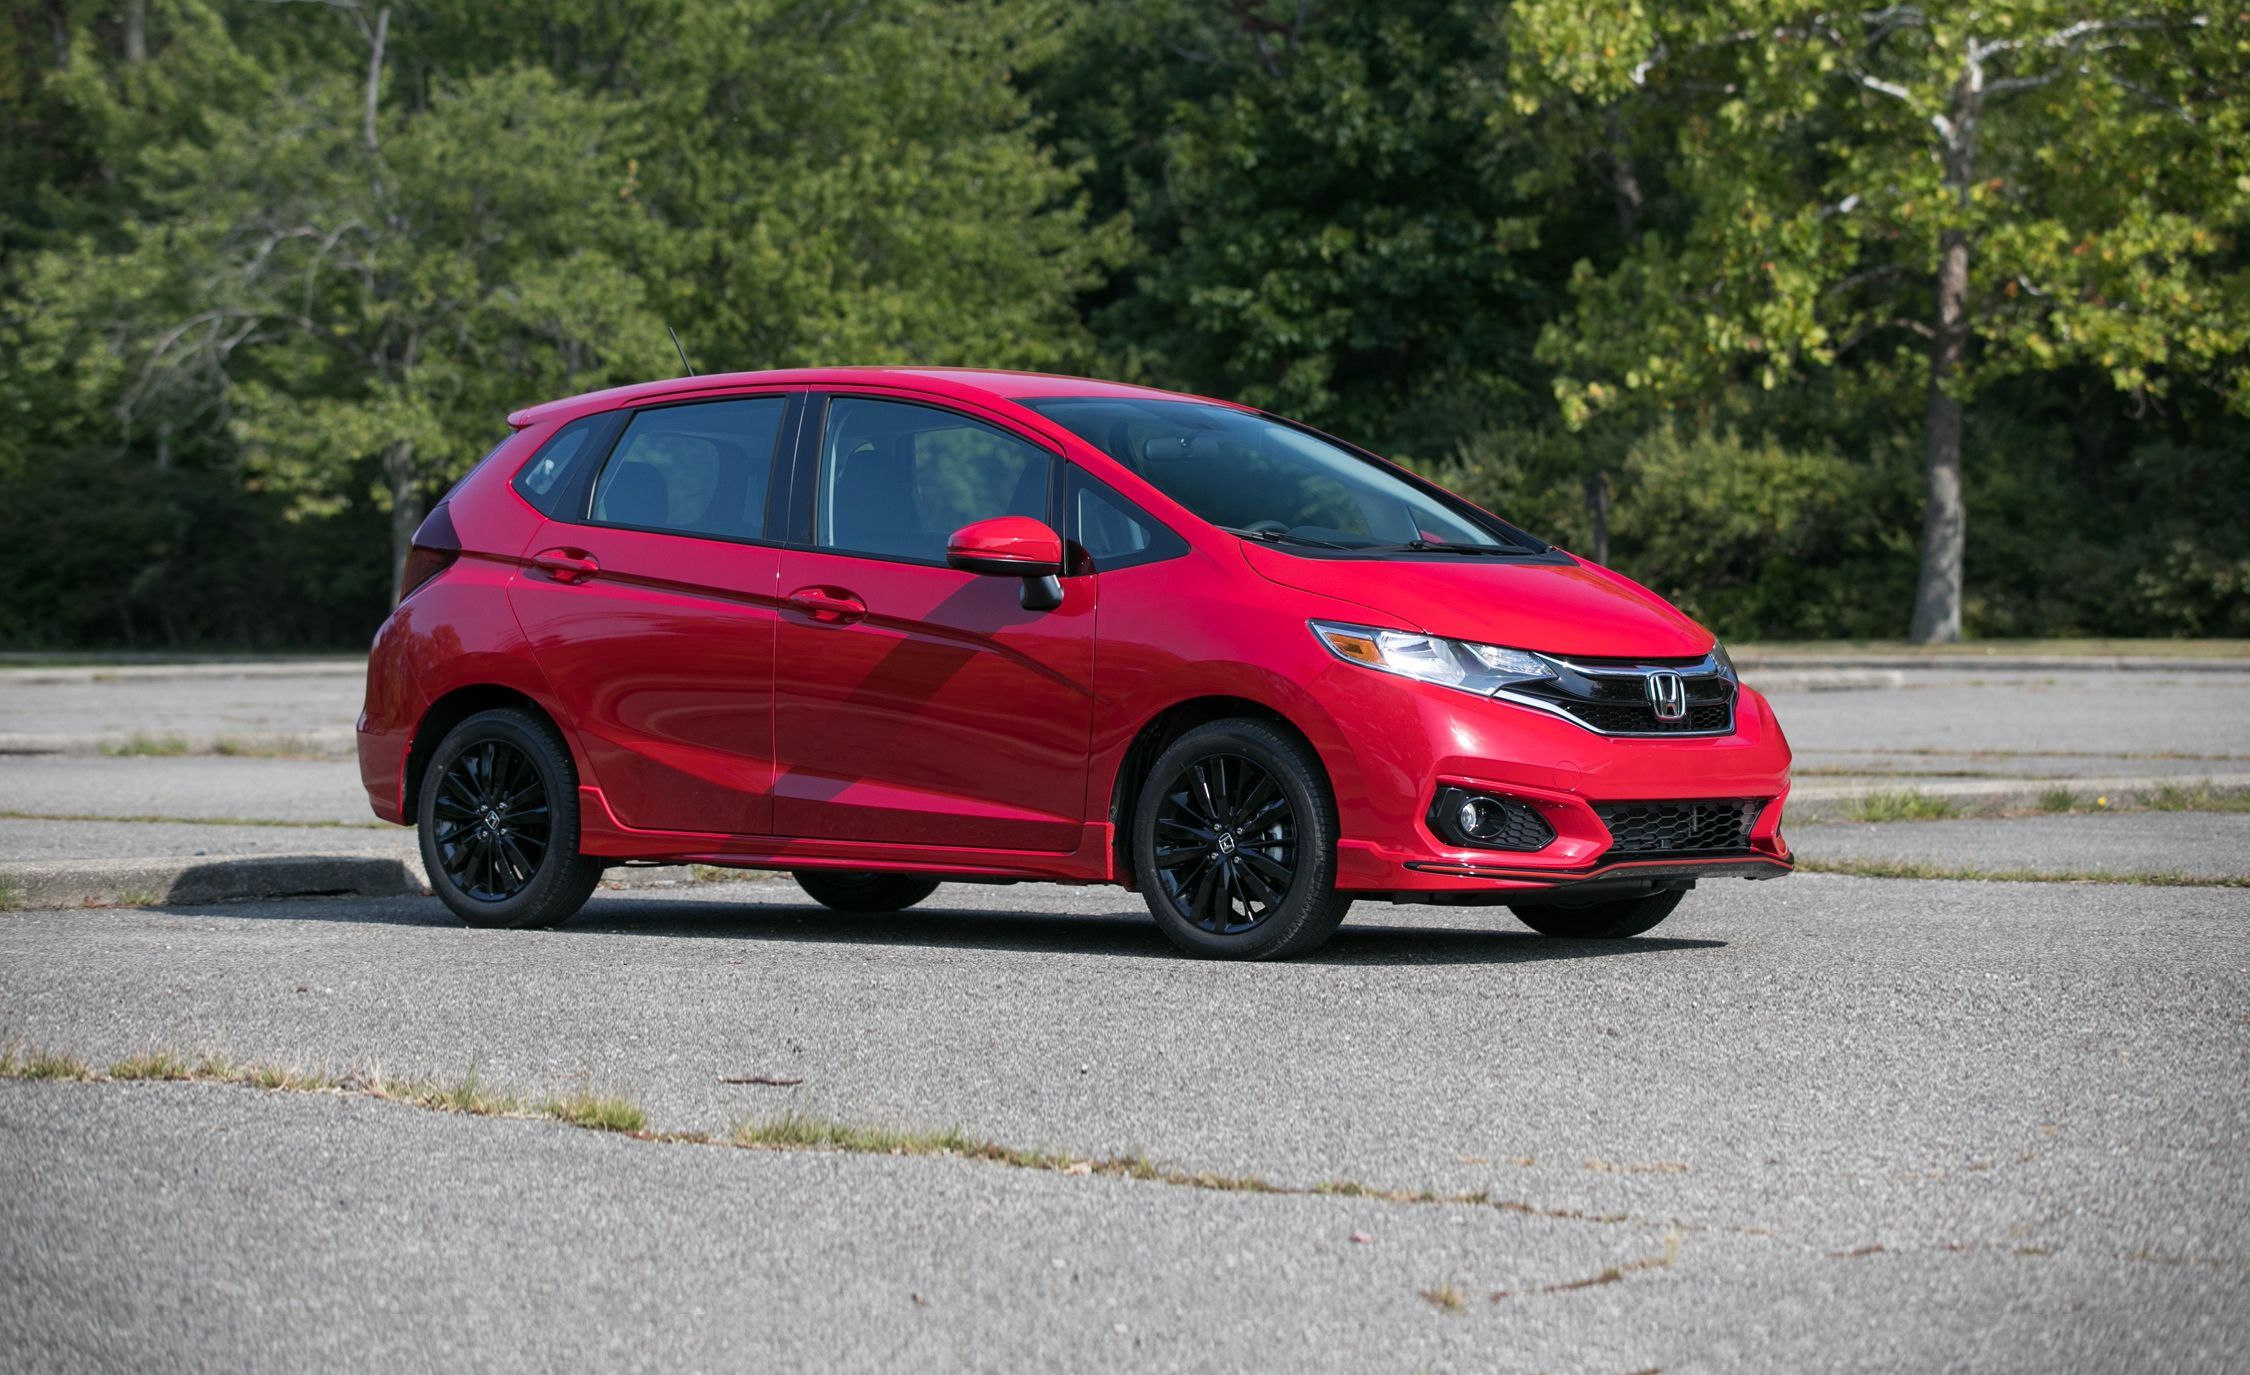 Honda Fit Reviews Honda Fit Price Photos And Specs Car And Driver - 2018 honda fit ex invoice price